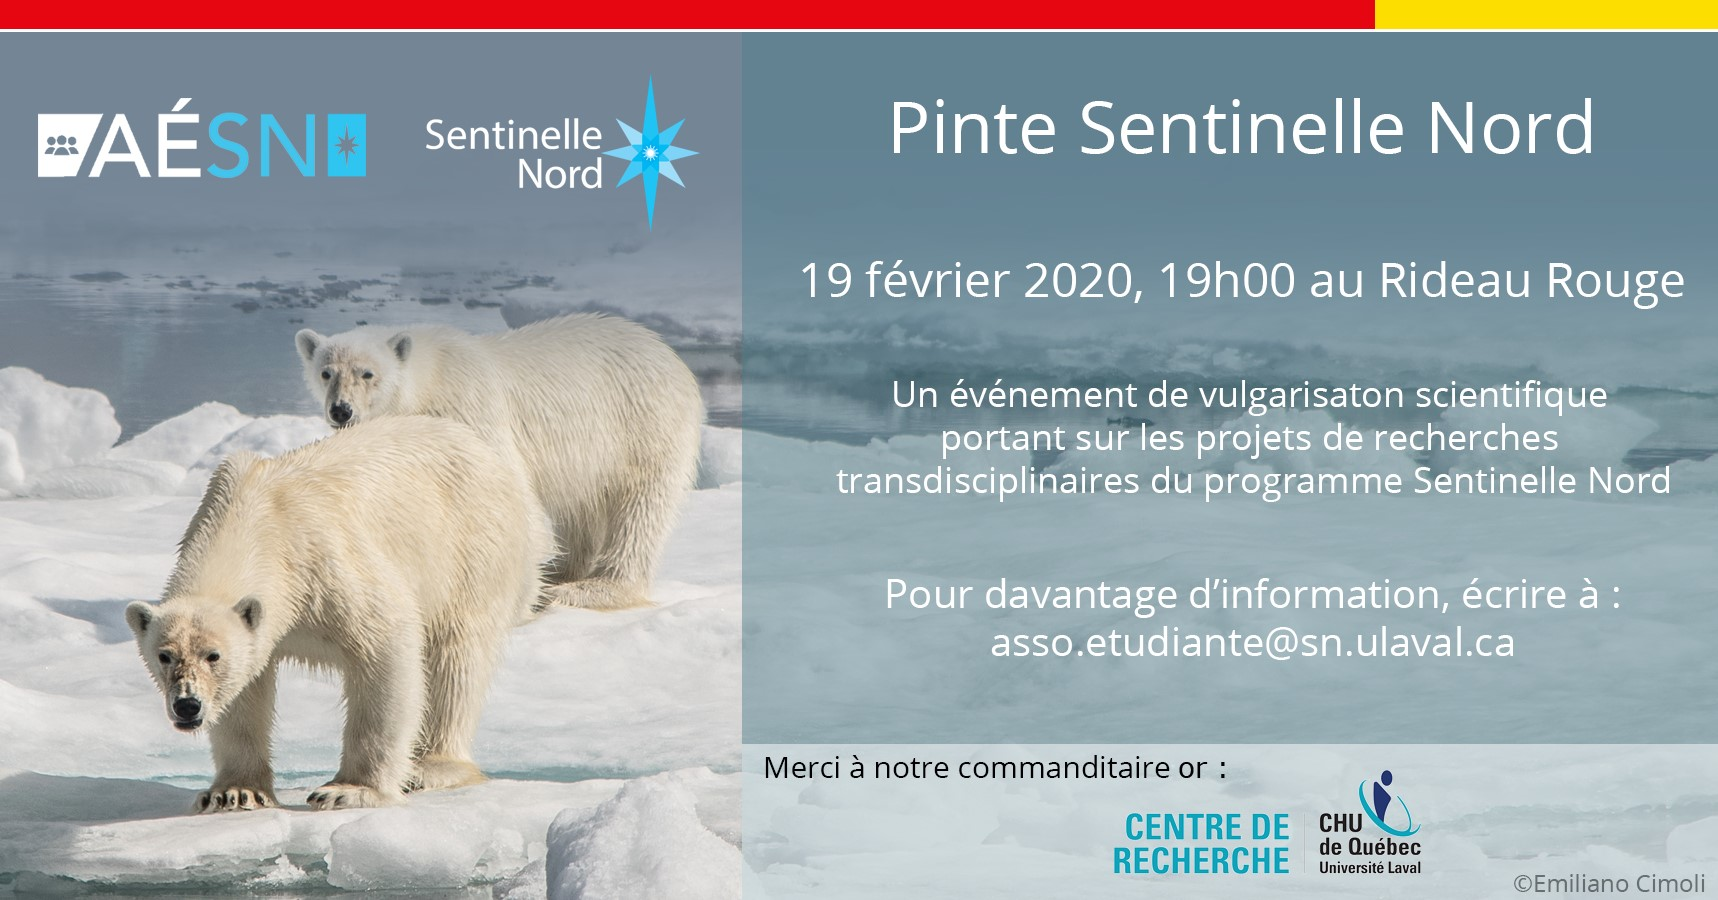 pinte sentinelle nord hiver 2020